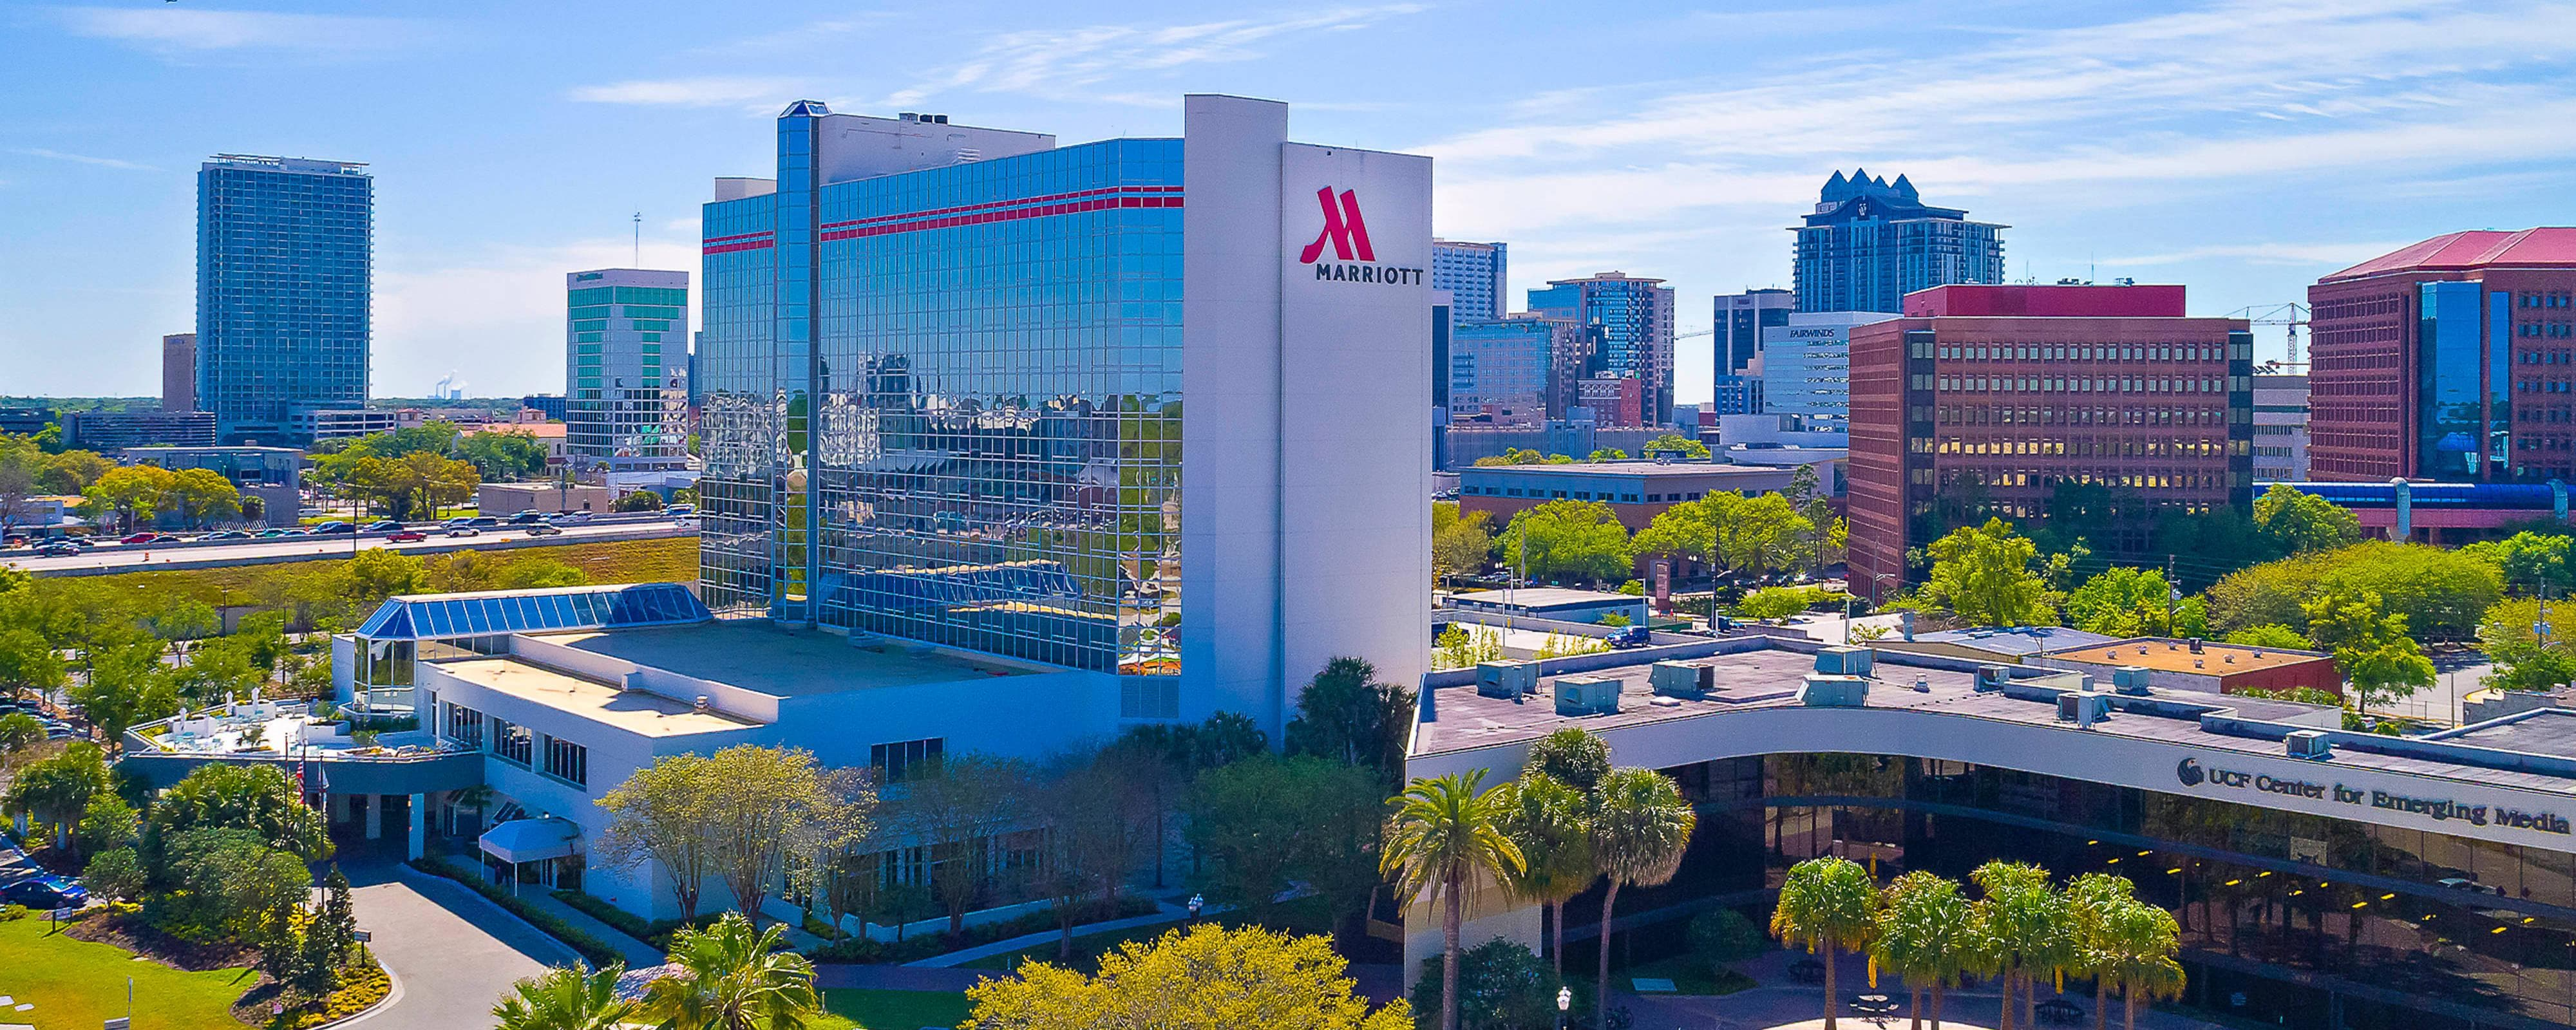 Downtown Hotels In Orlando Fl Marriott